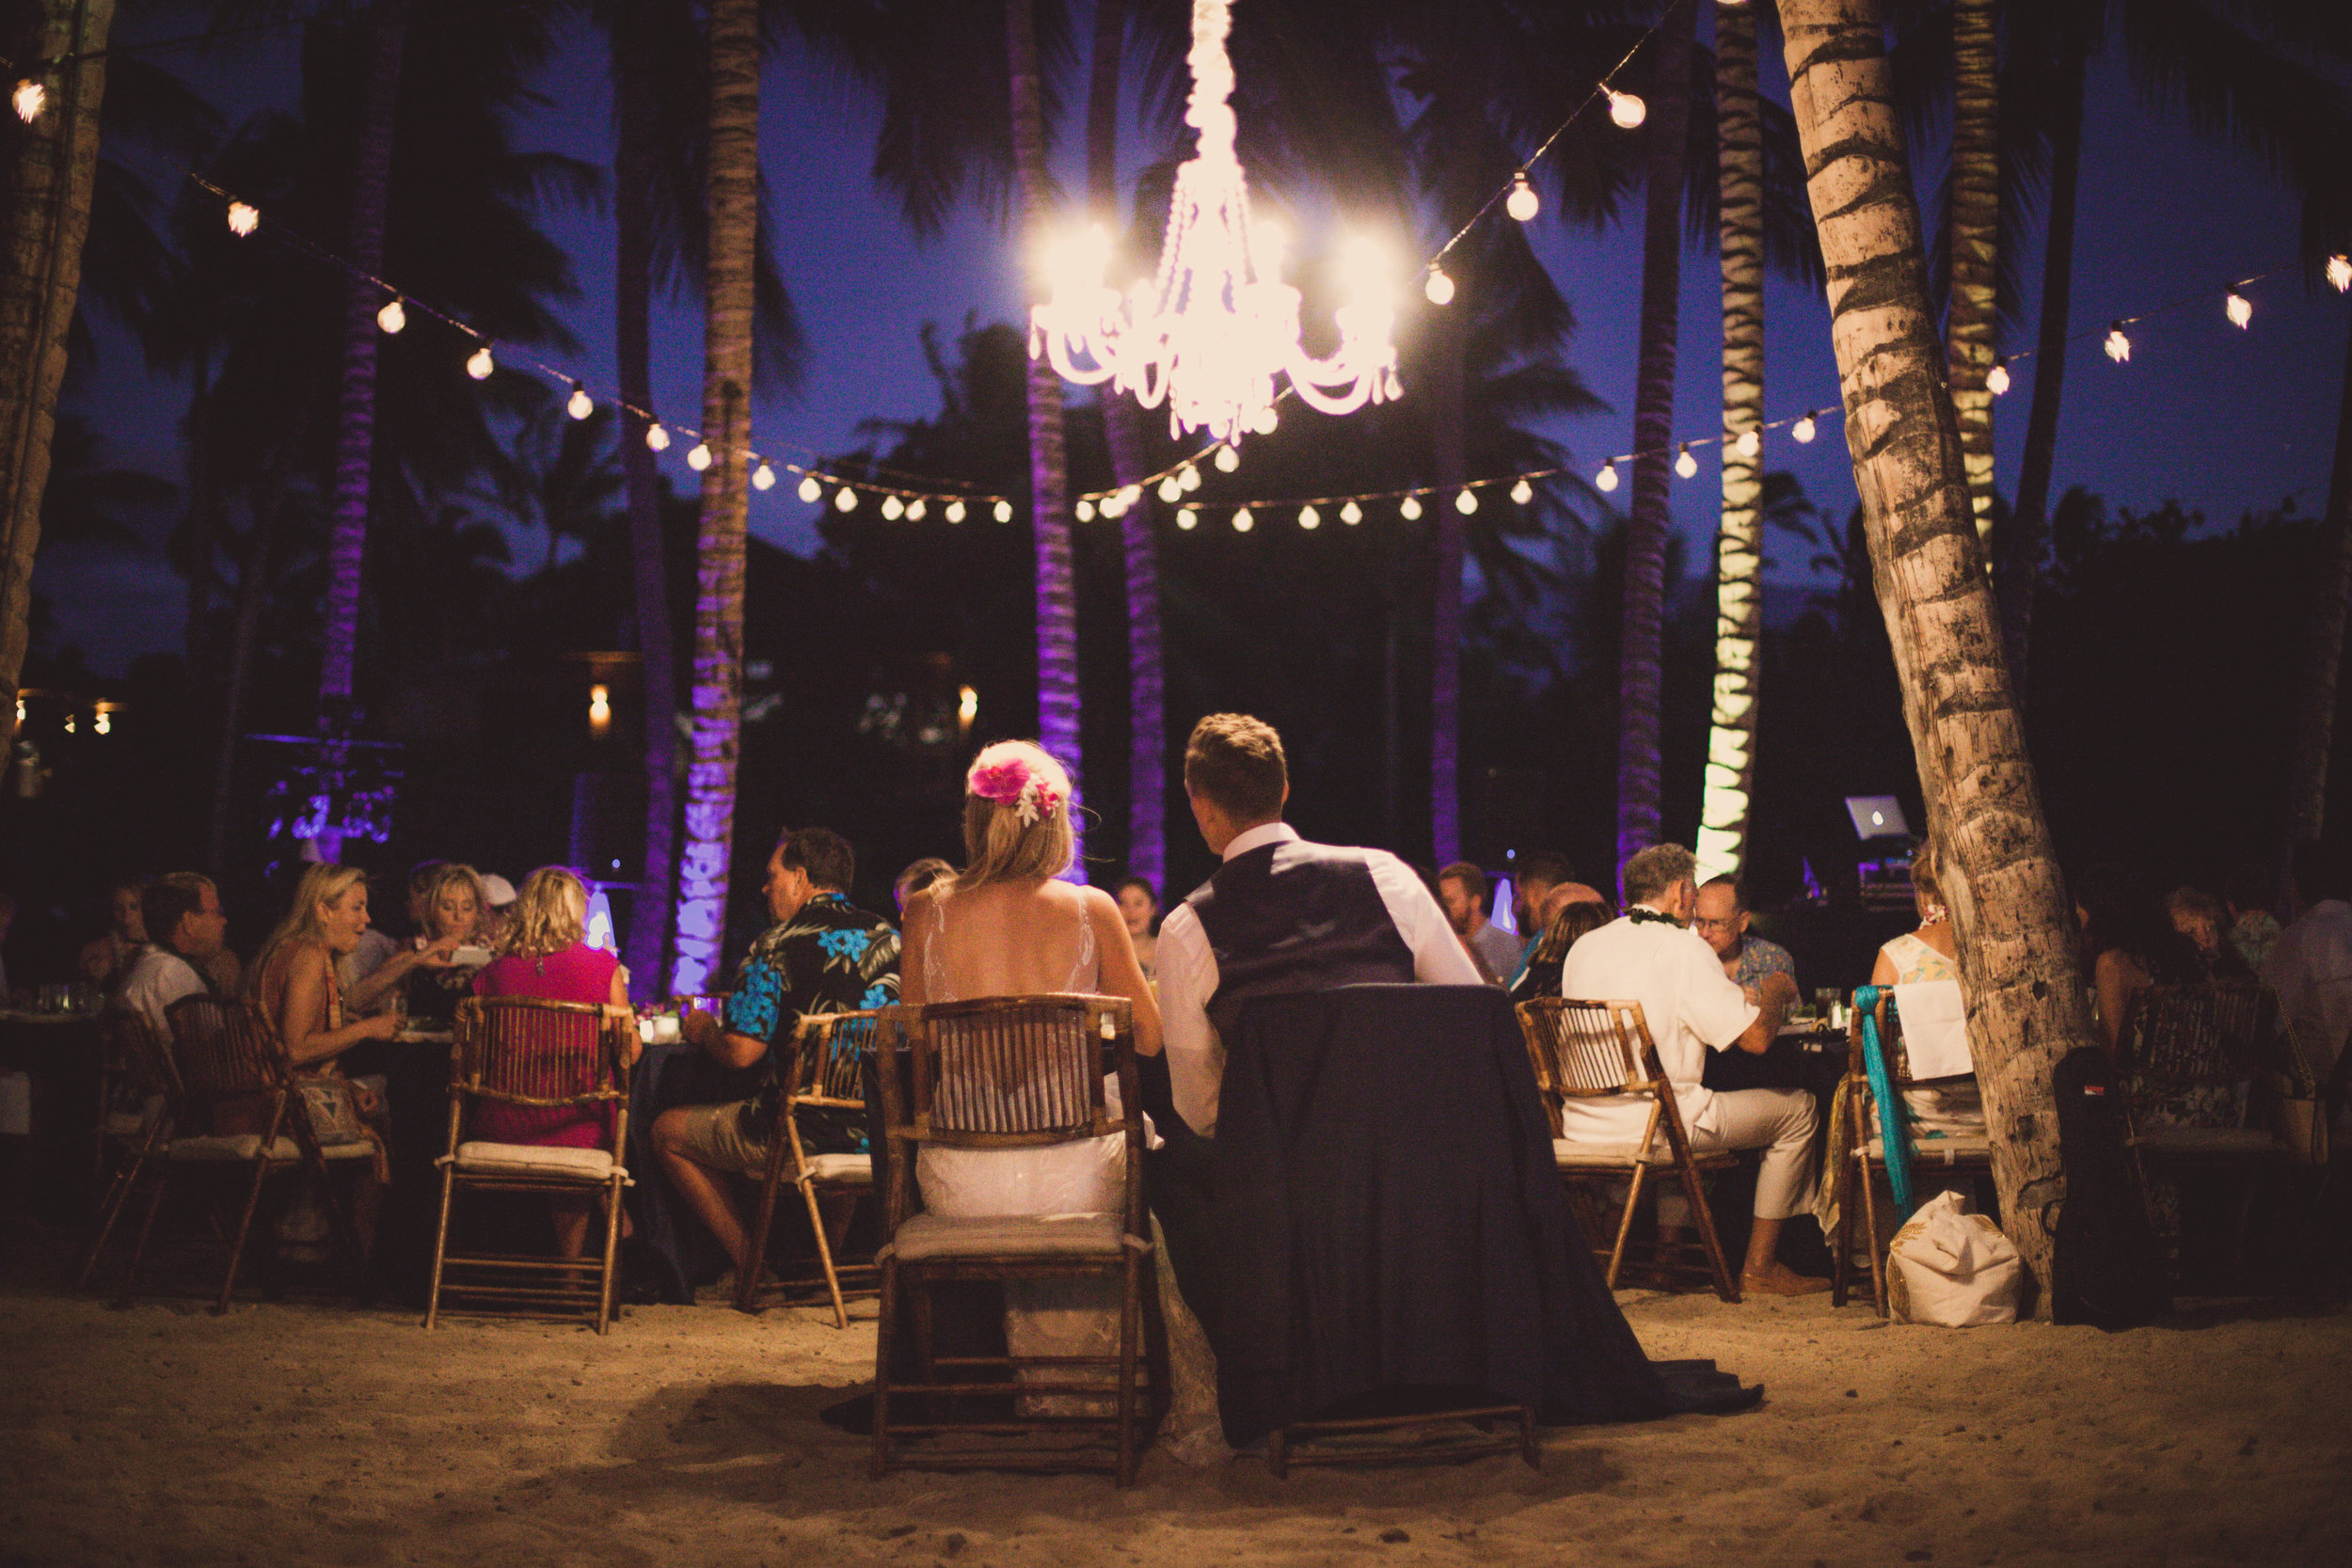 big island hawaii fairmont orchid beach wedding © kelilina photography 20170812192310-1.jpg